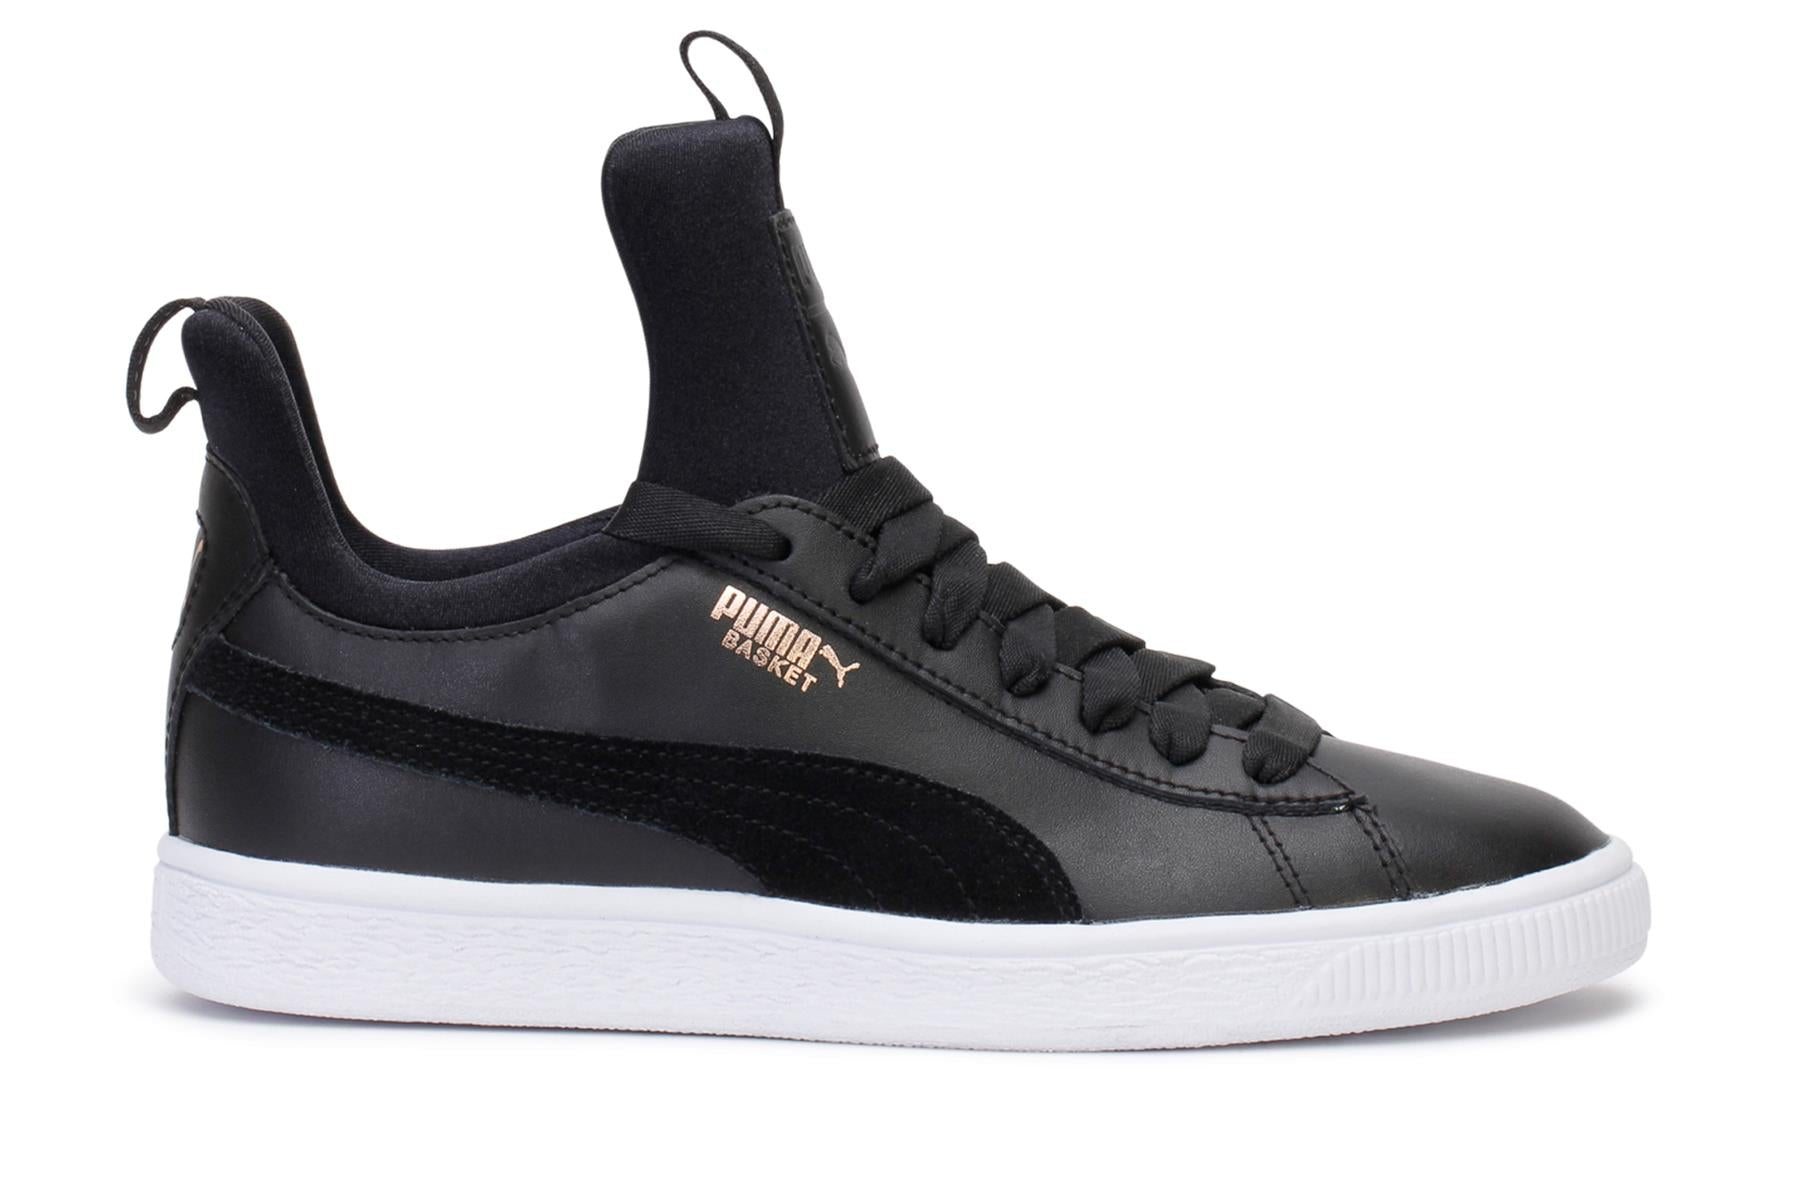 puma-womens-basket-fierce-fashion-sneakers-puma-black-365480-02-main